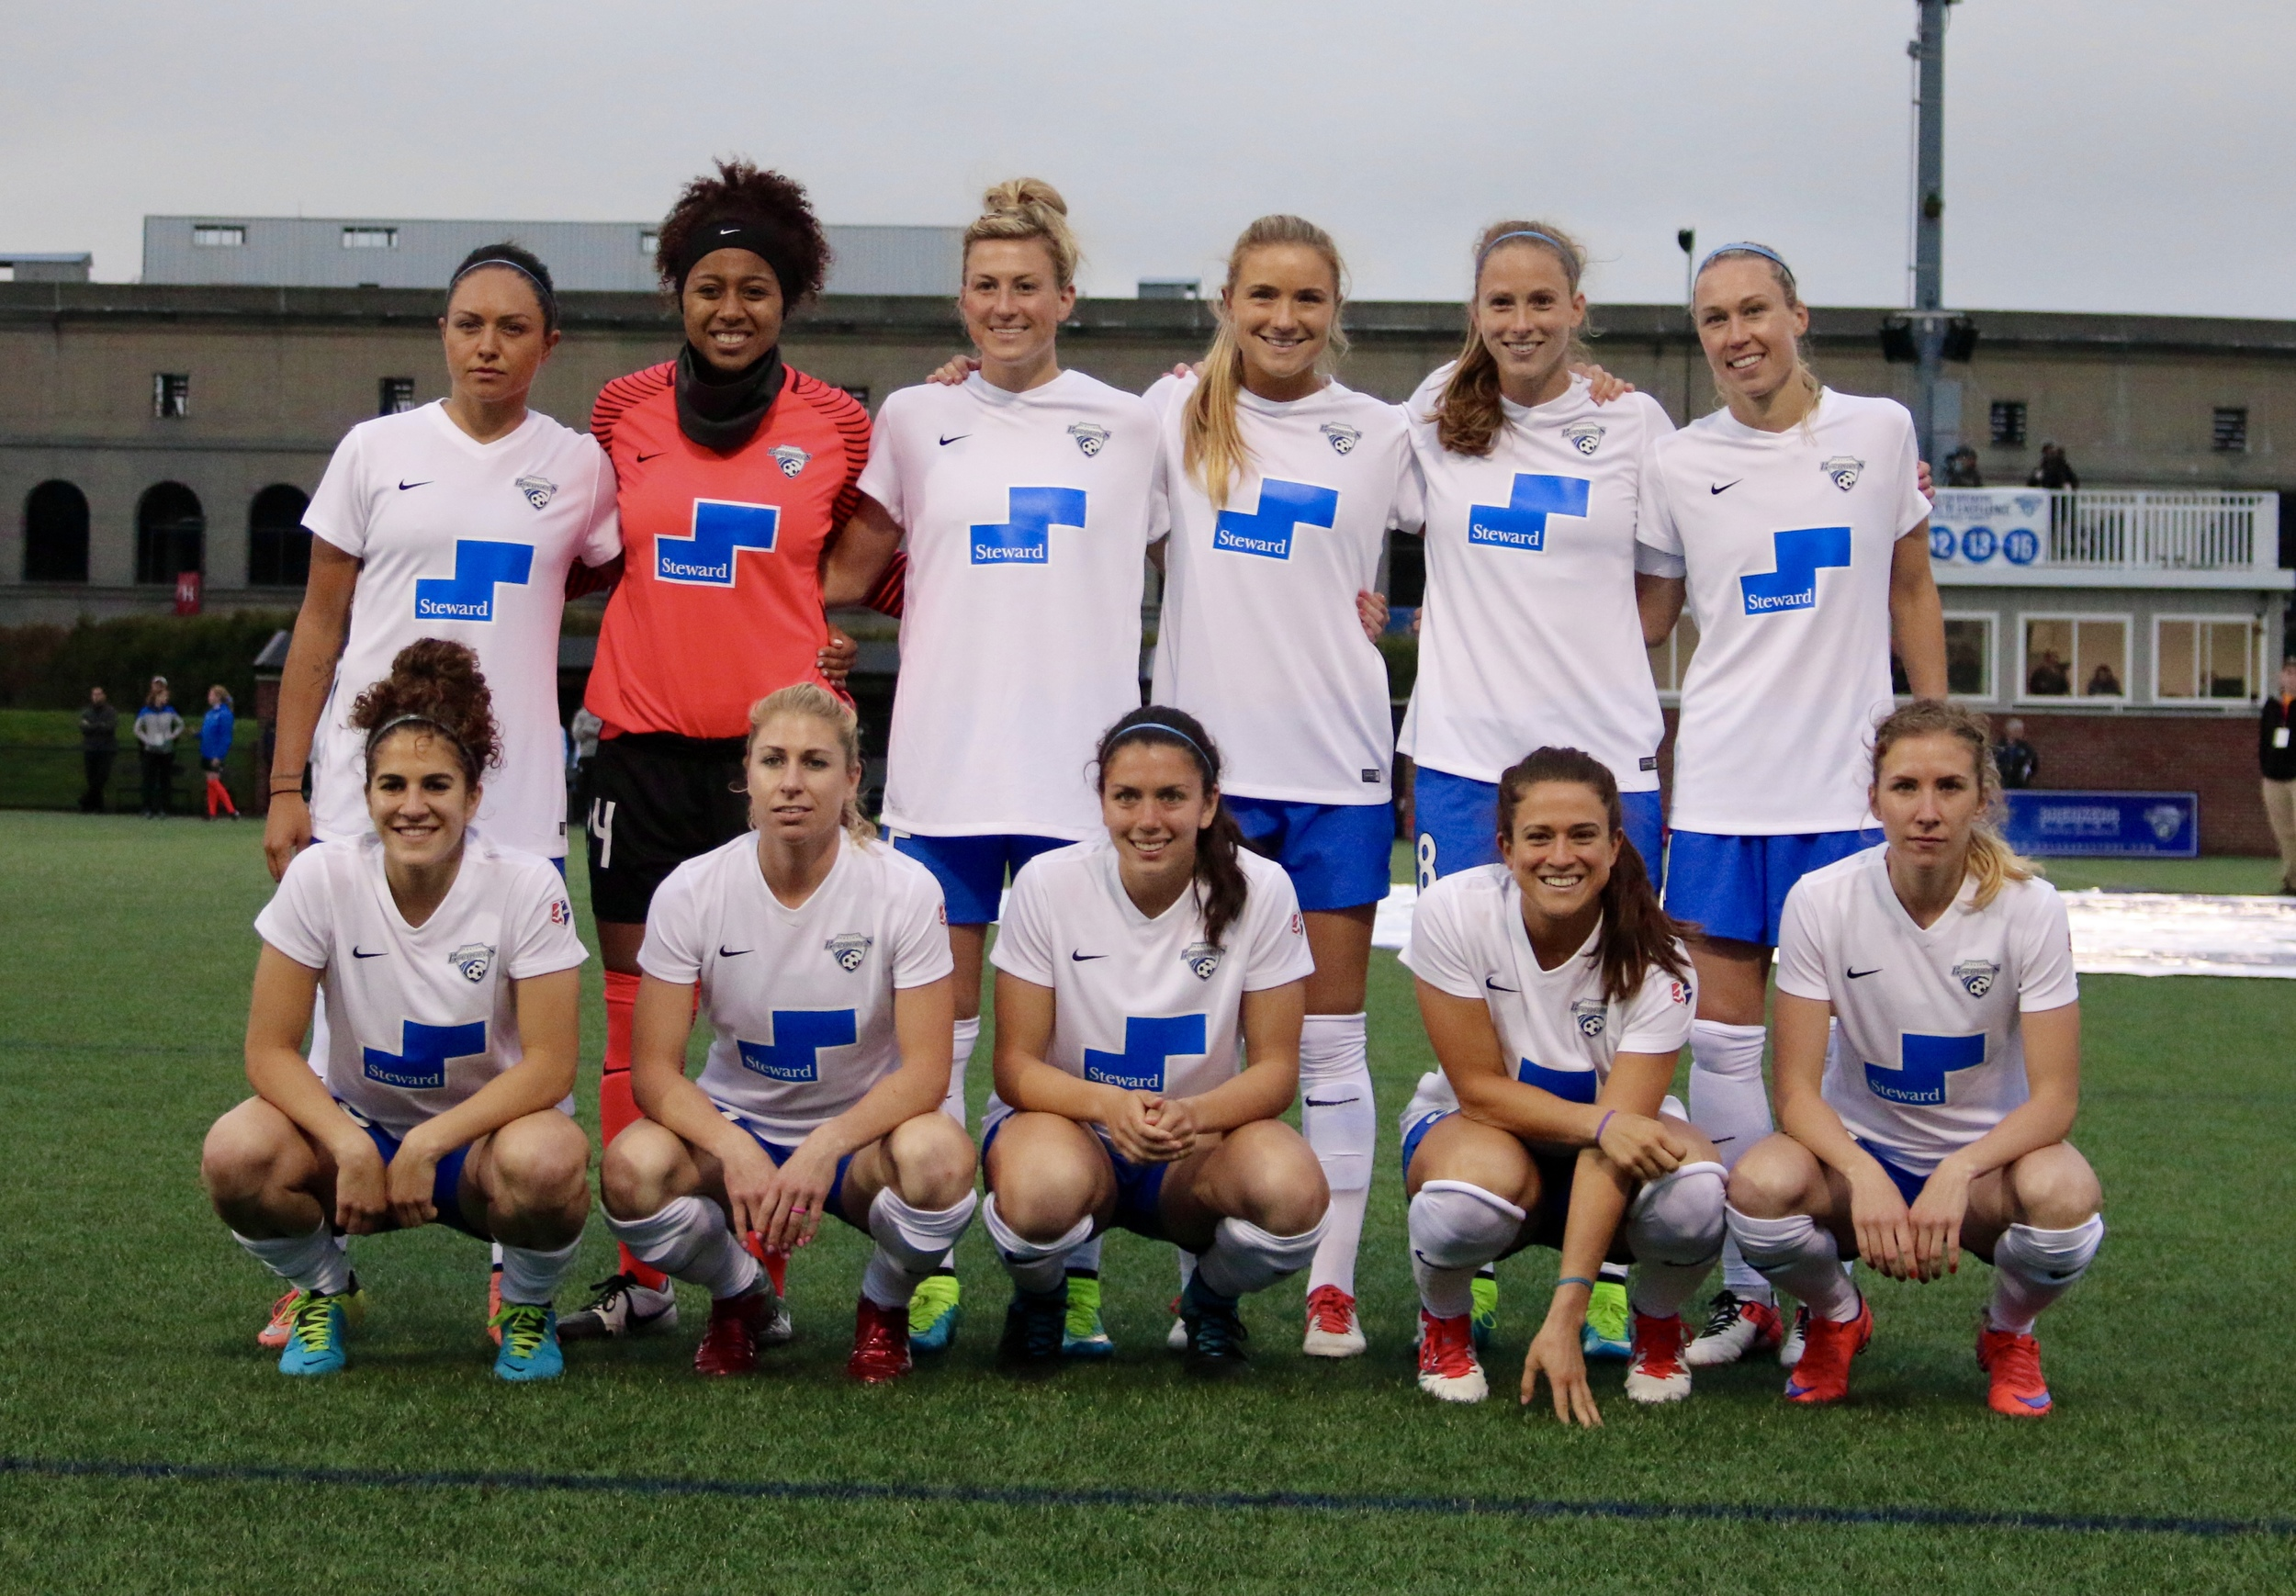 Boston prior to the home match vs chicago red stars. Abby smith with two fully functional knees.